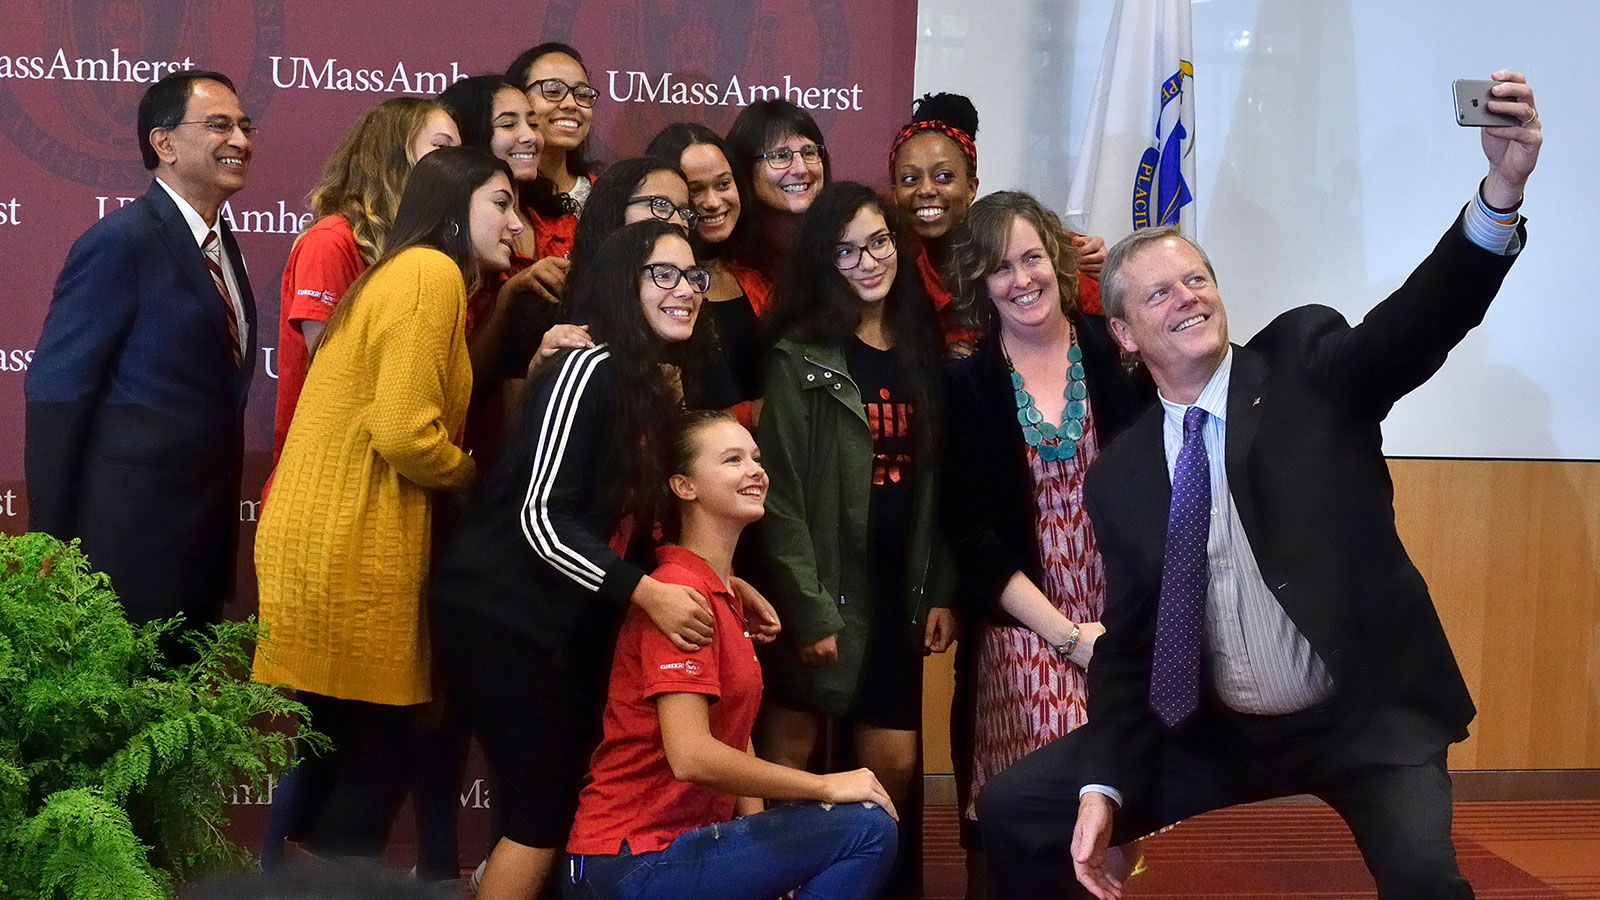 Governor Charlie Baker takes a selfie with UMass Amherst student and Chancellor Kumble R. Subbaswamy